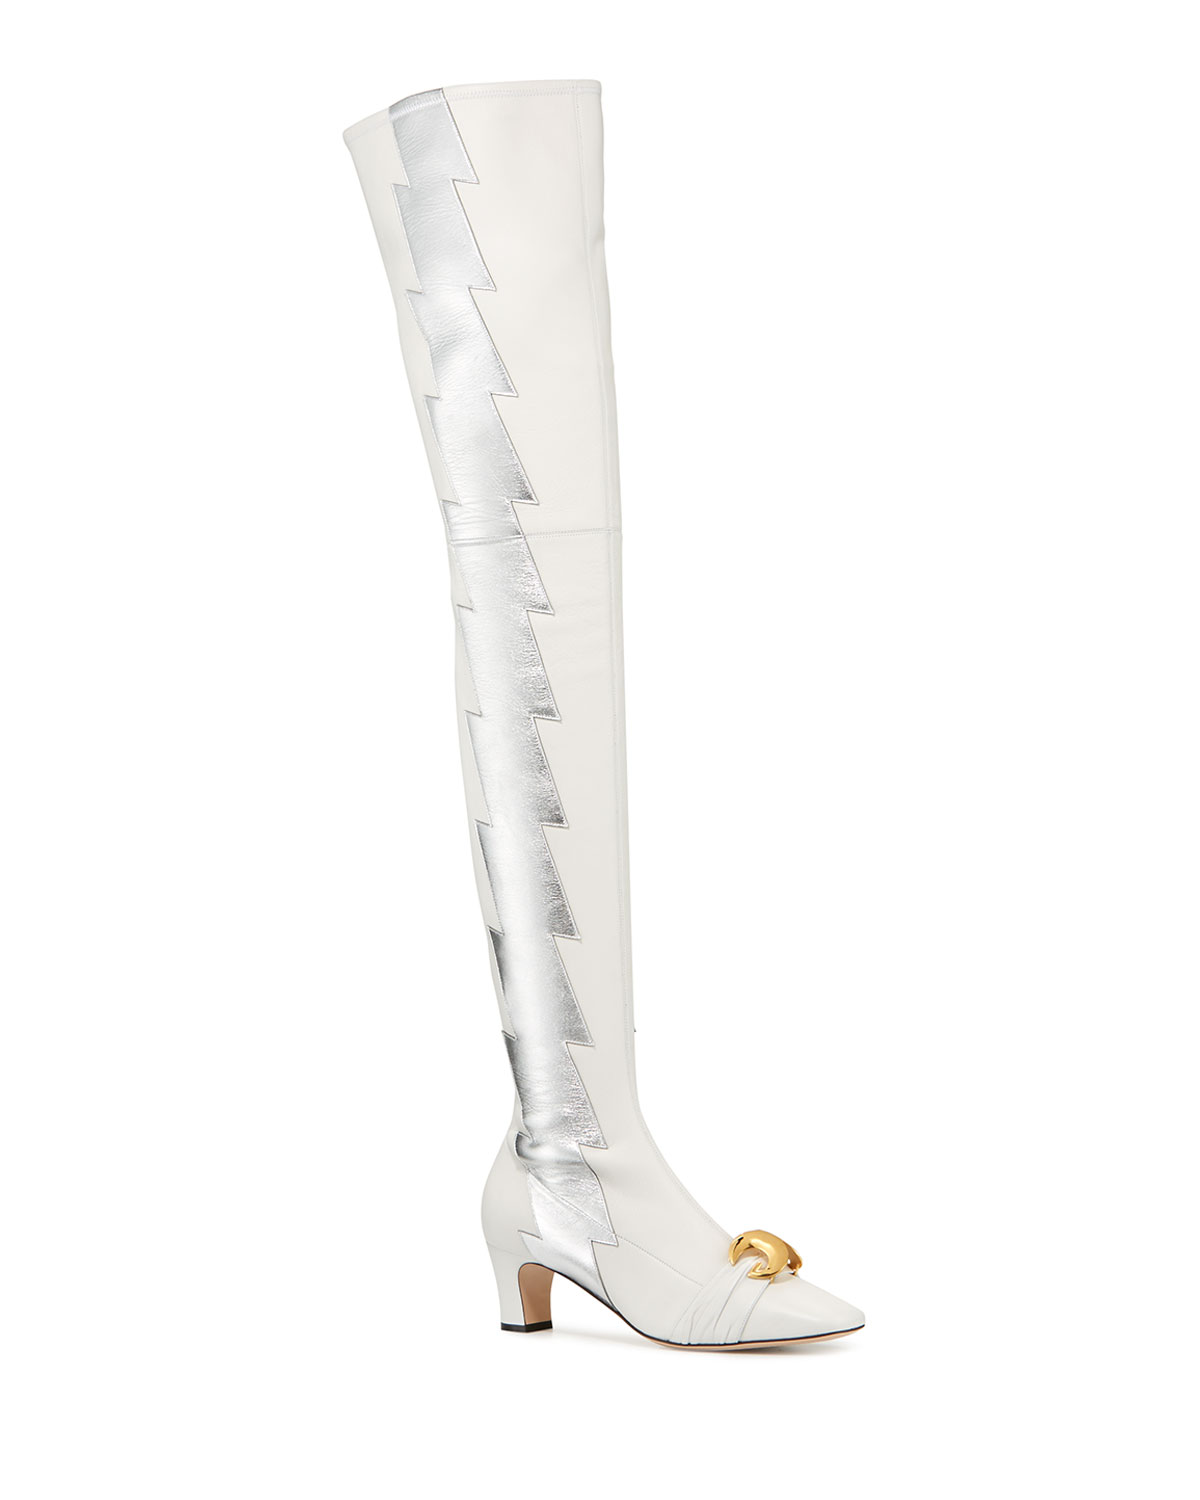 c61a2712160 Gucci Usagi Lightning Over-the-Knee Leather Boots